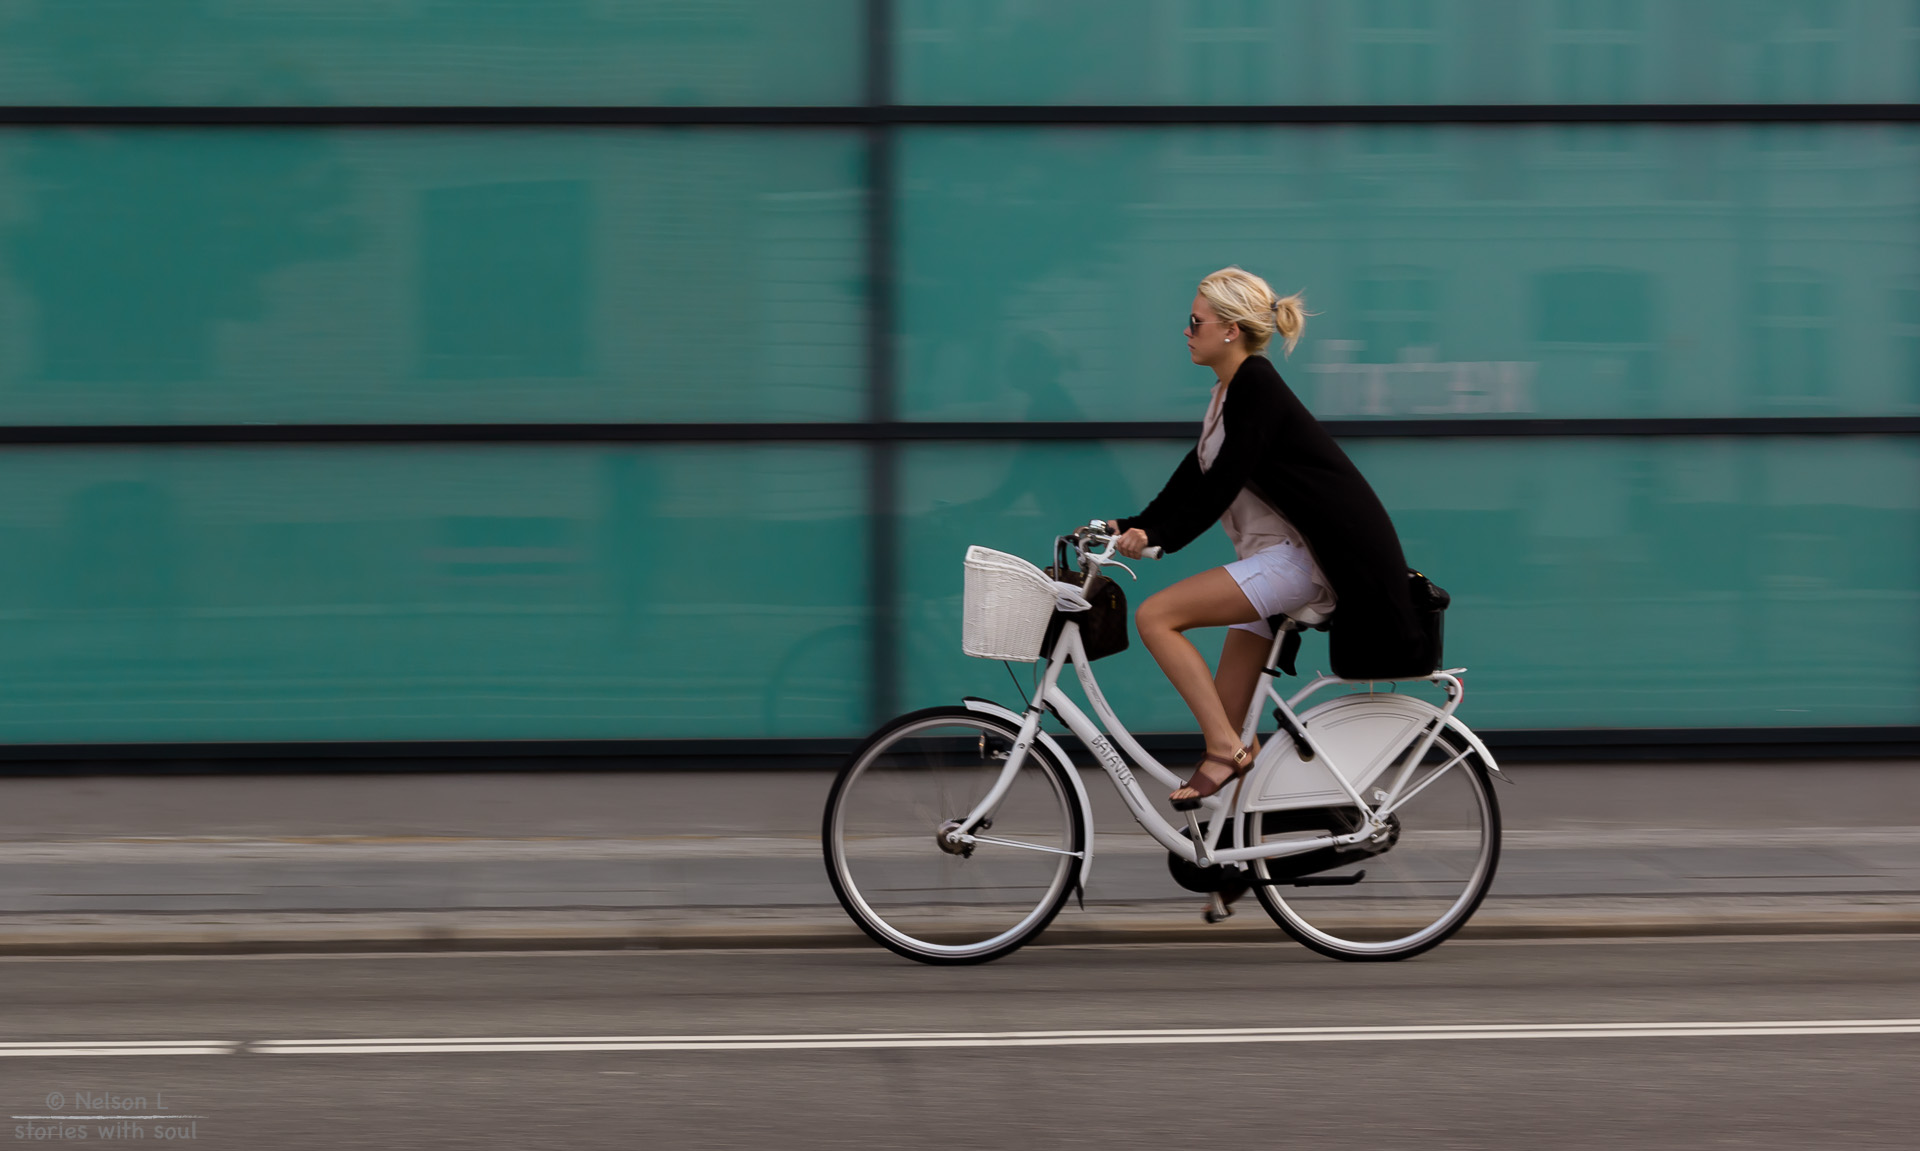 blond woman biking on white bicycle past big glass windows in city